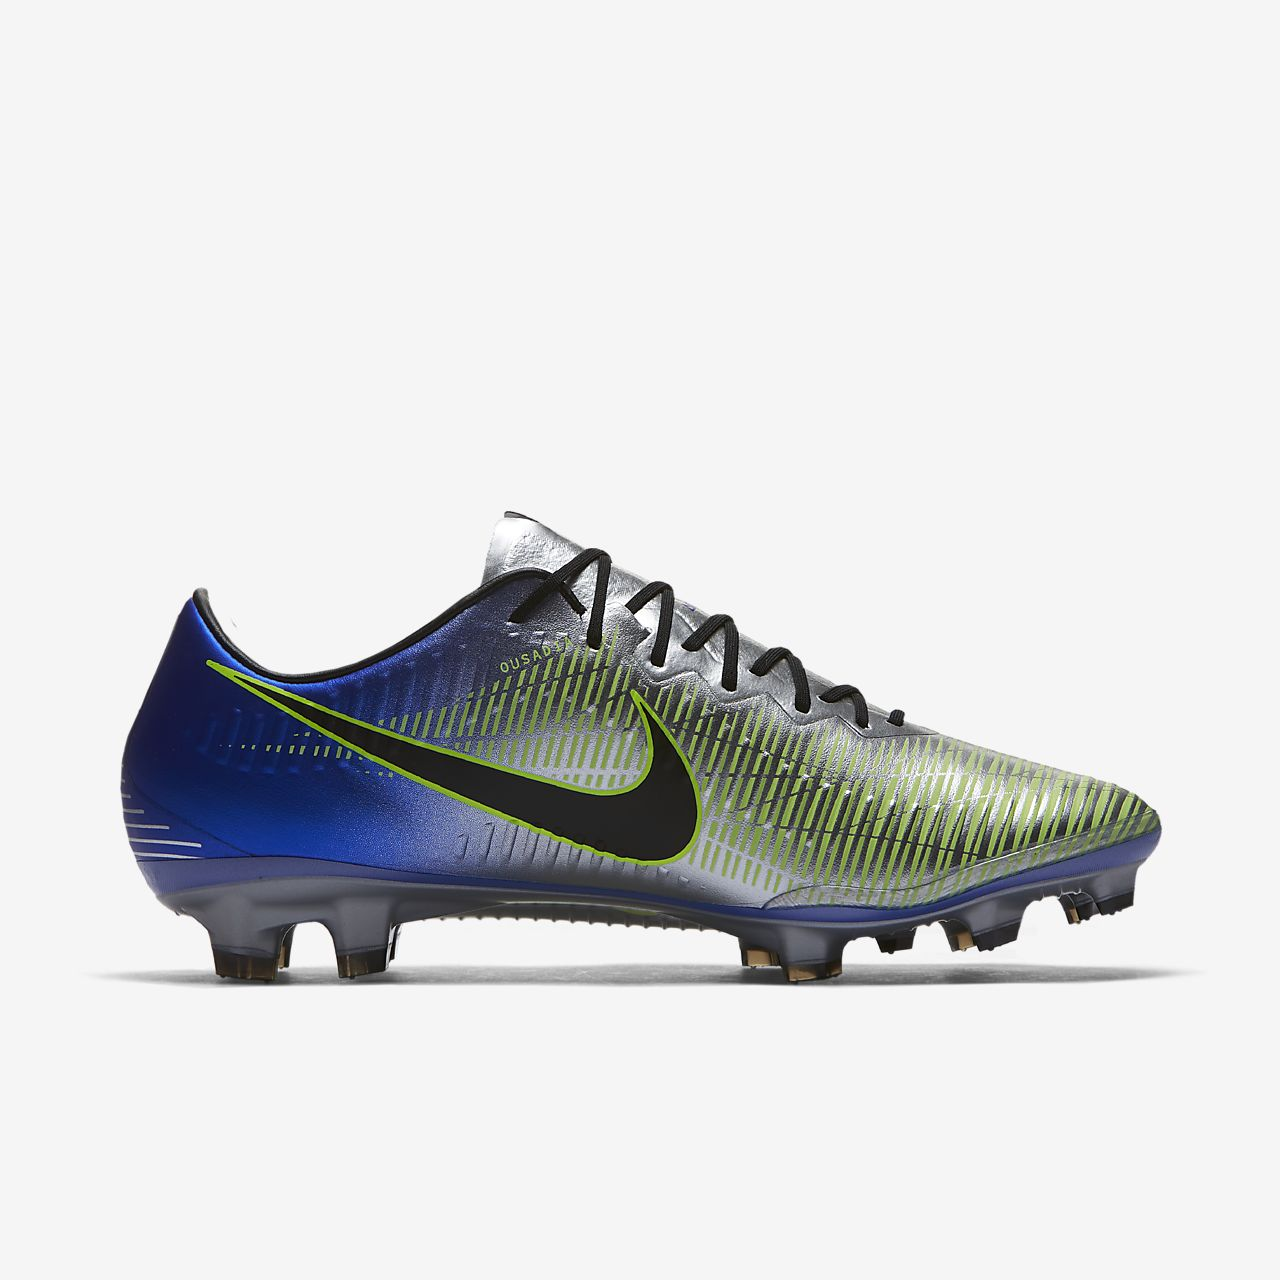 ... Nike Mercurial Vapor XI Neymar Firm-Ground Soccer Cleat